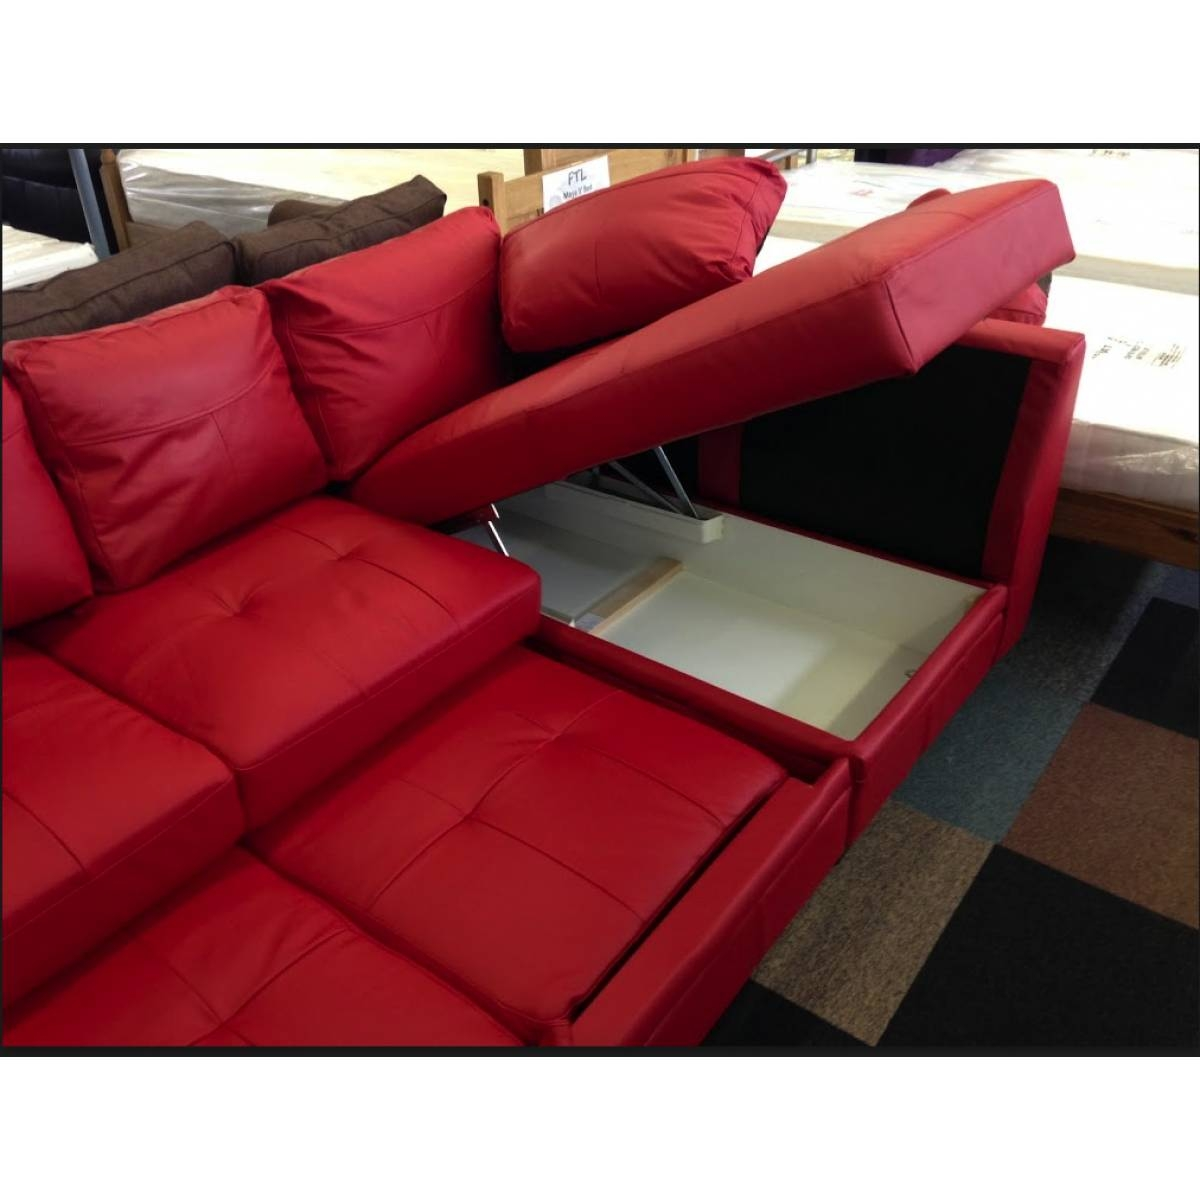 Beautiful Corner Sofa Bed Red Maxresdefault Sofa | Ciov intended for 2X2 Corner Sofas (Image 1 of 30)